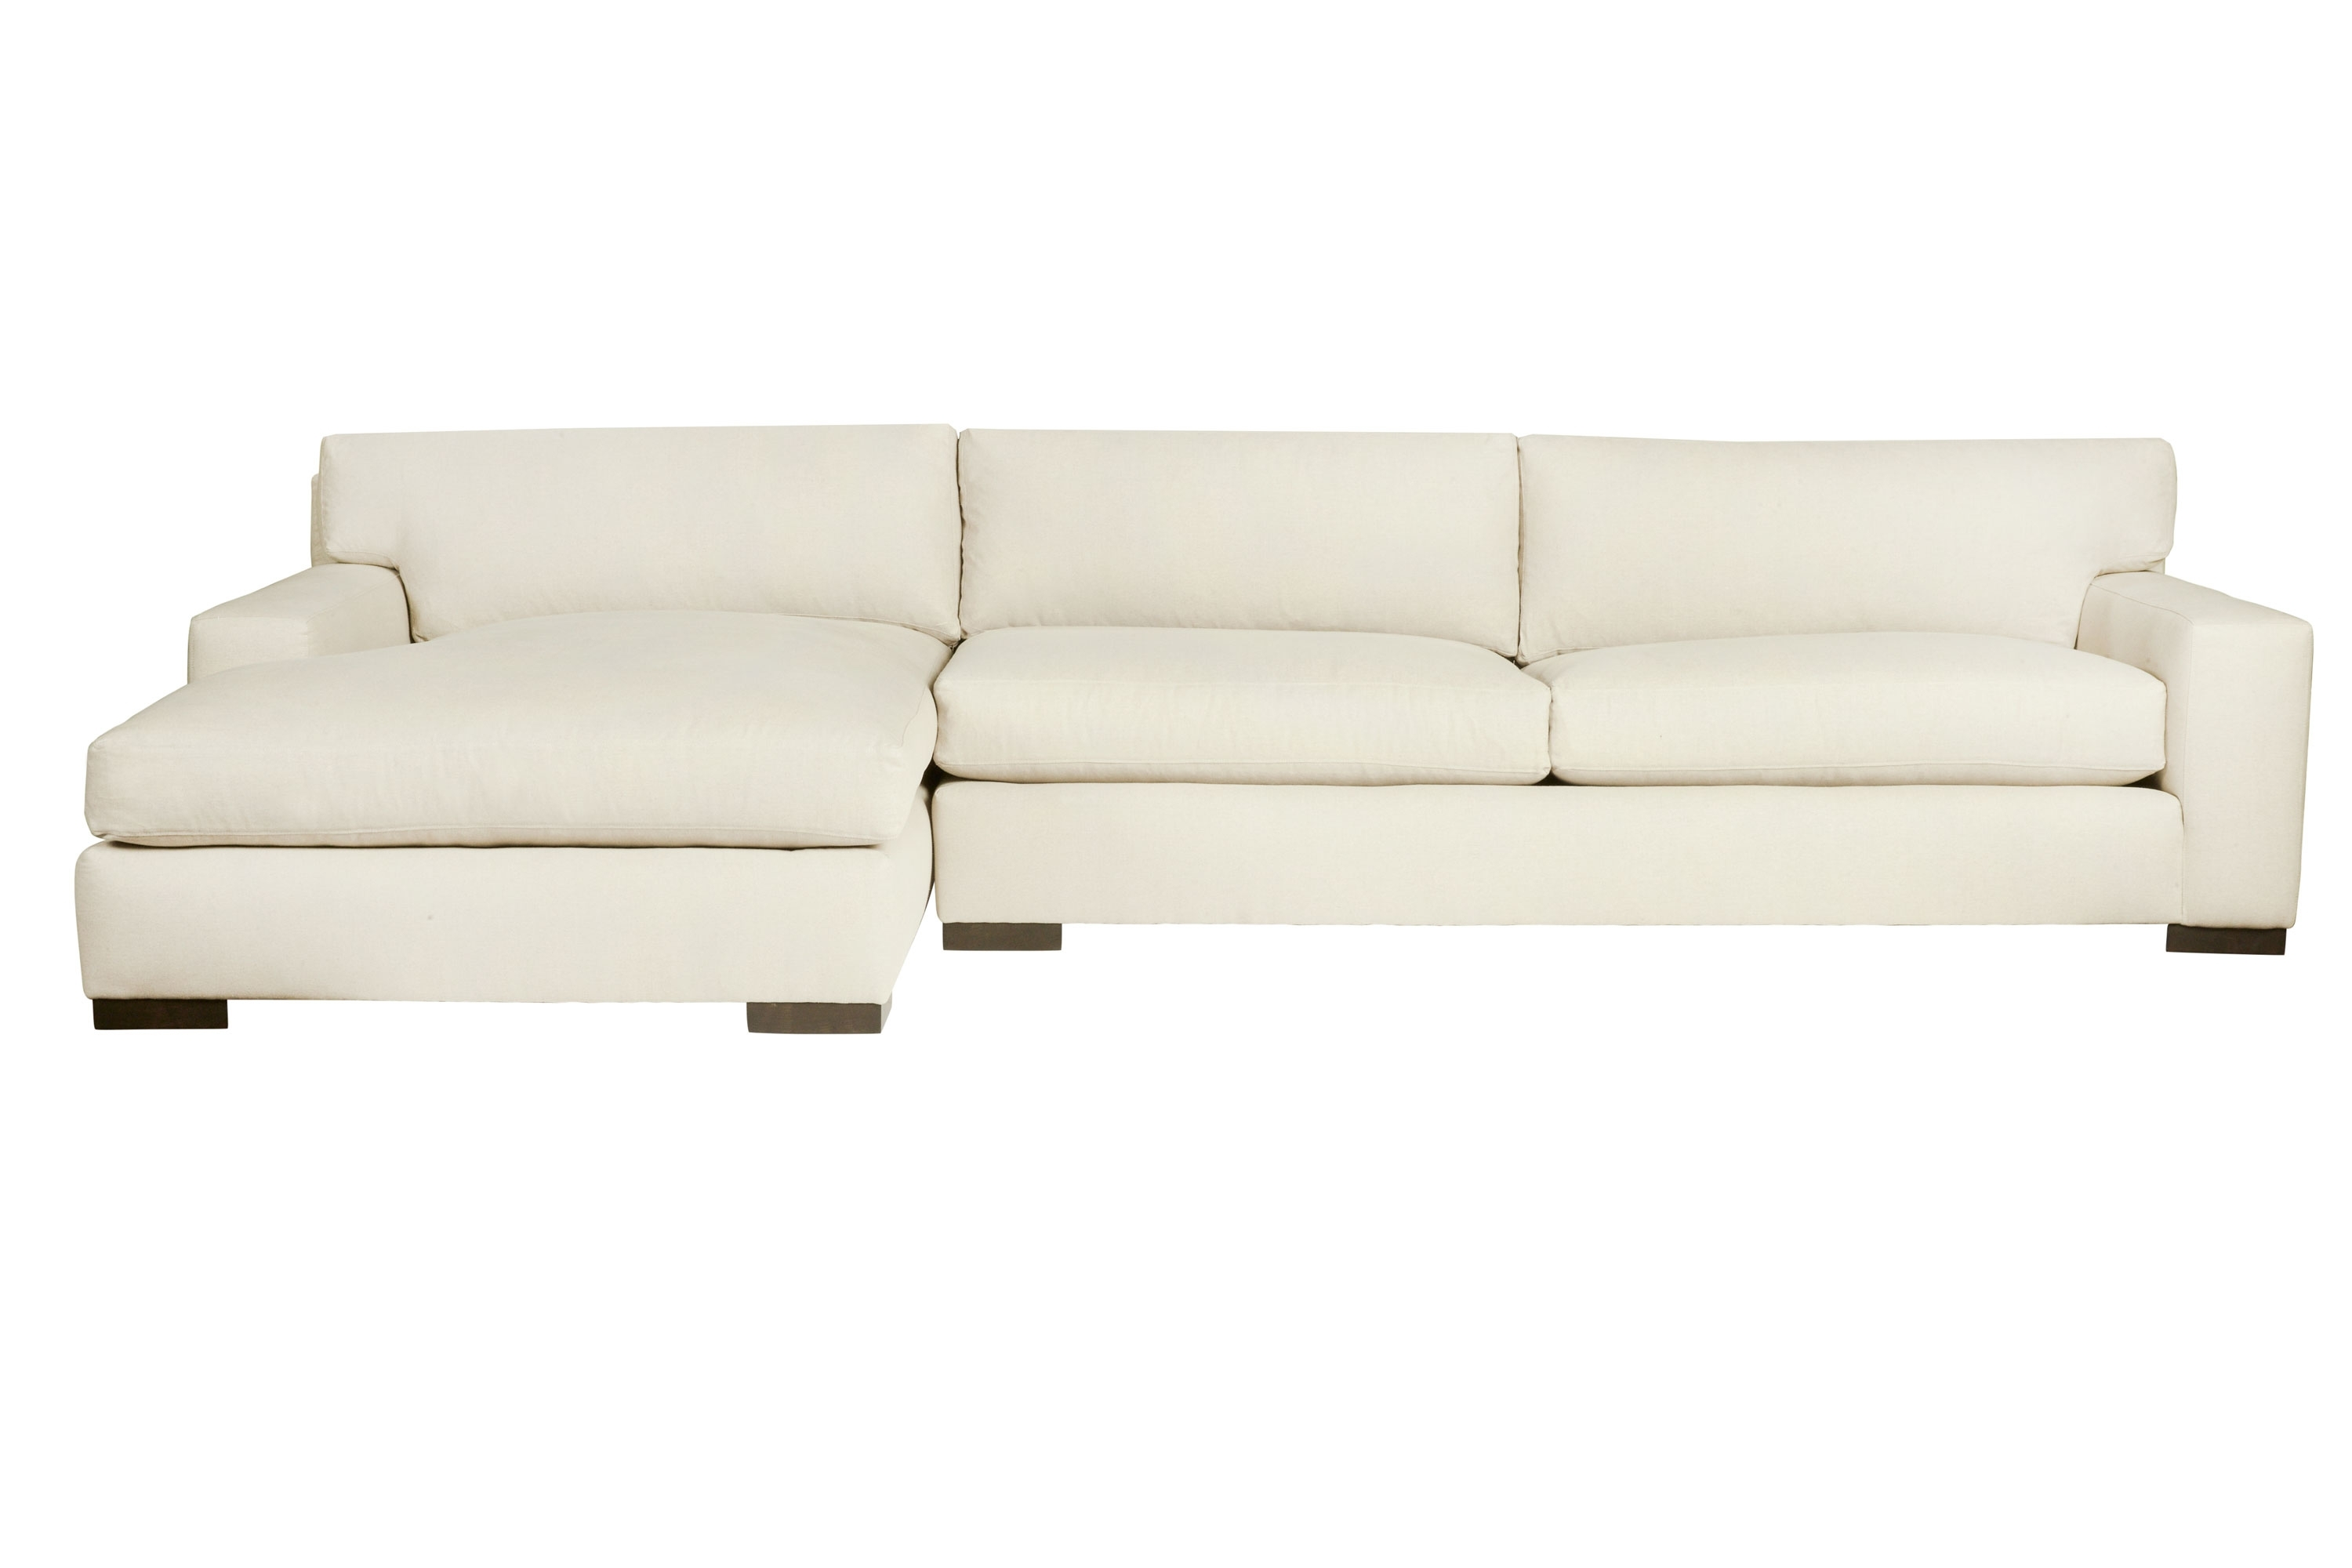 Most Recently Released Quad Cities Sectional Sofas In Furniture : Craigslist Furniture Quad City Iowa Furniture (View 10 of 15)